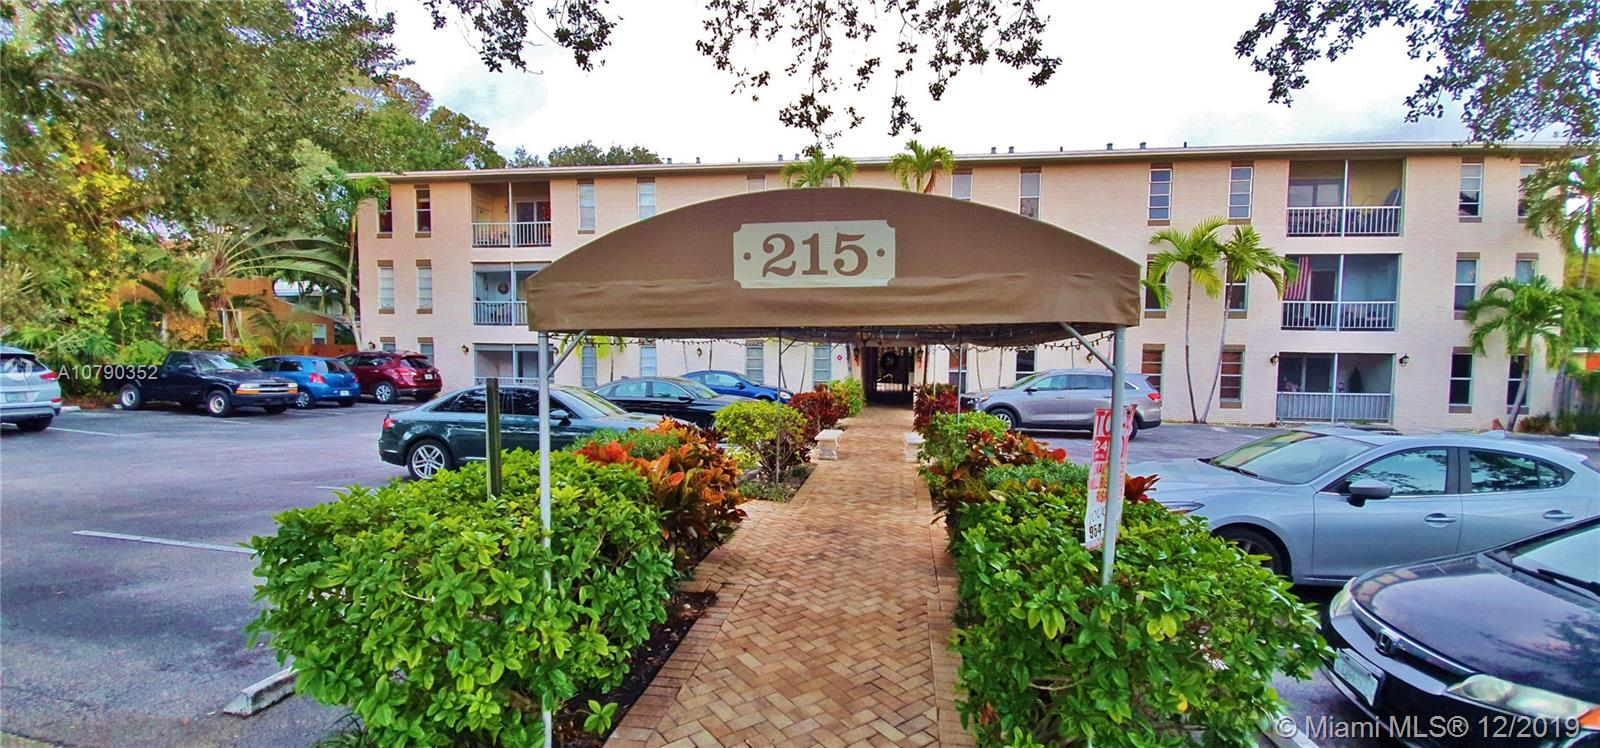 215 NE 16th Ave #303 For Sale A10790352, FL